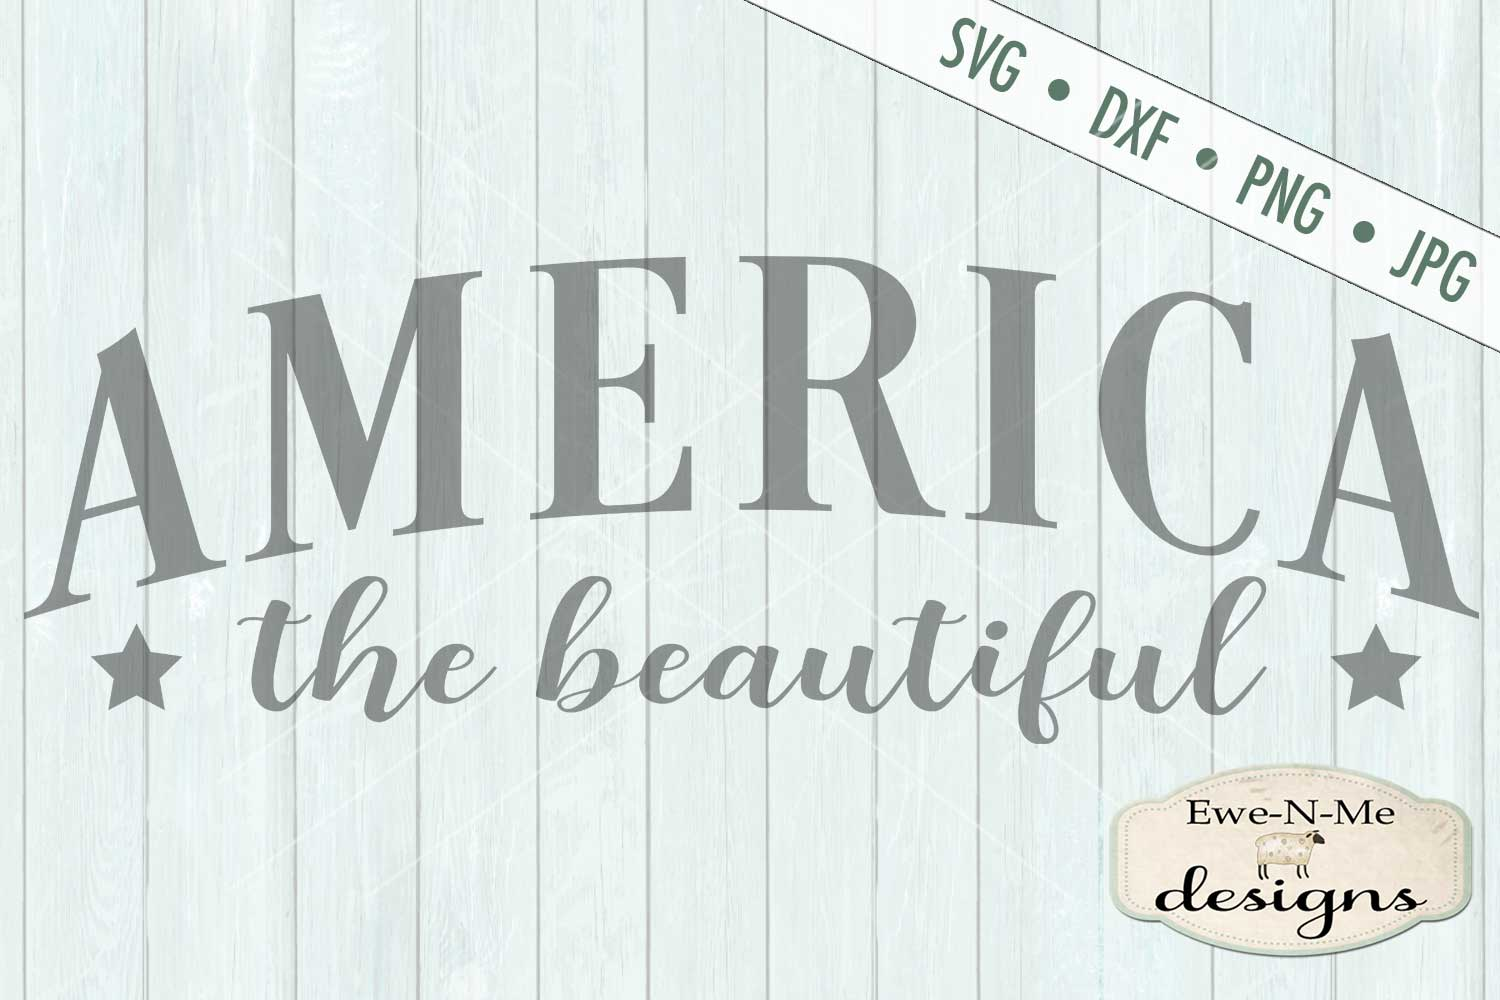 America The Beautiful Patriotic - July 4th - SVG DXF Files example image 2